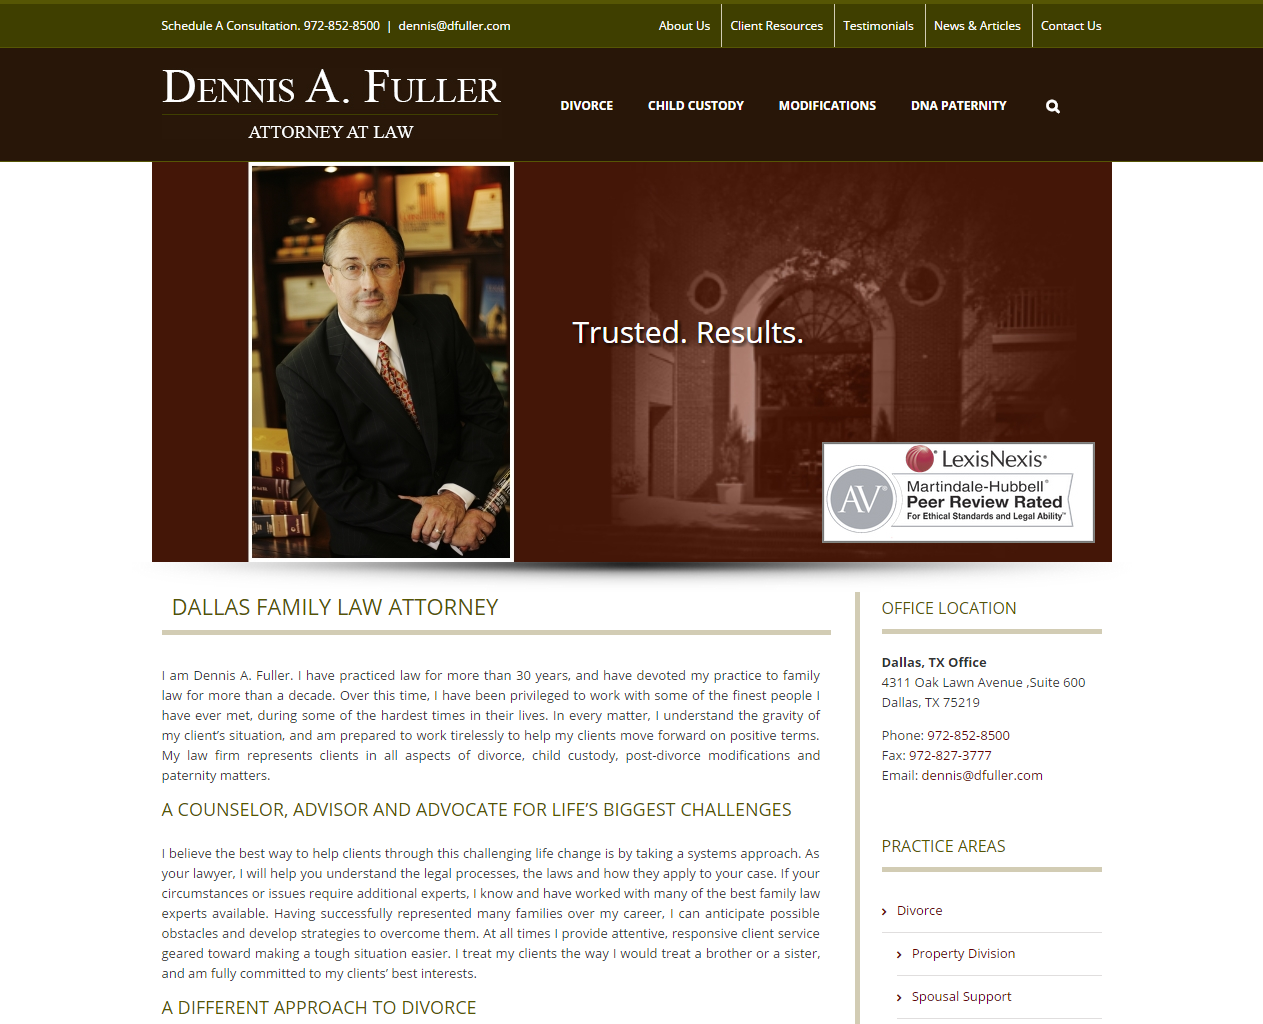 Web Design For Texas Law Firms - Designing Law